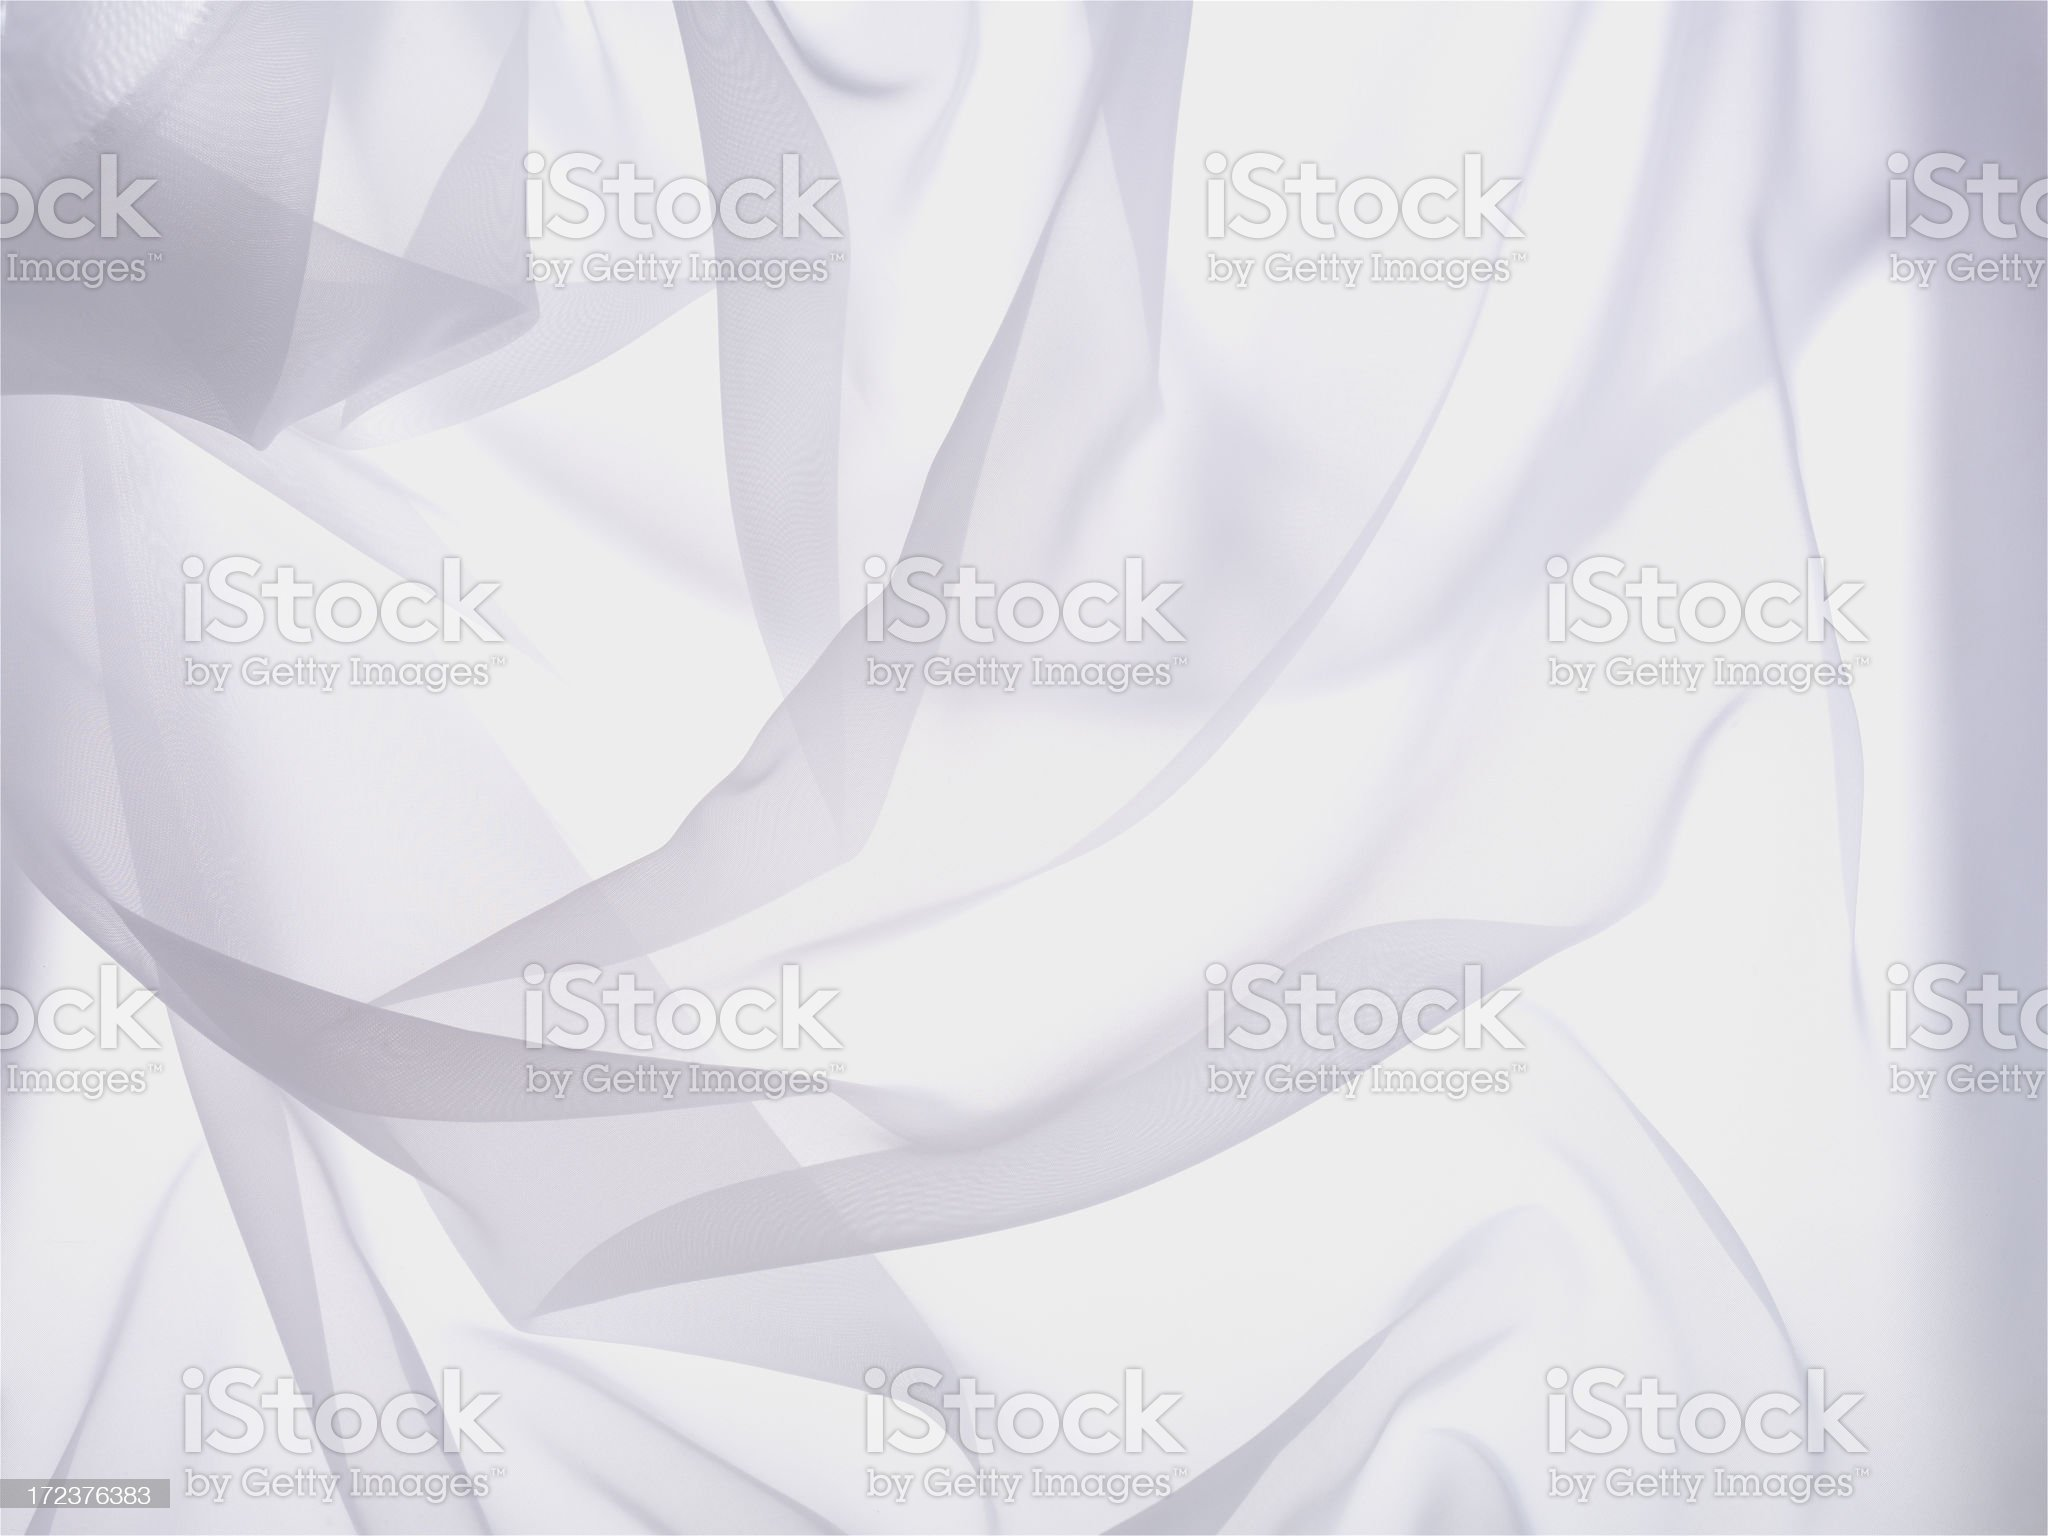 Wrinkled white sheer cloth background royalty-free stock photo